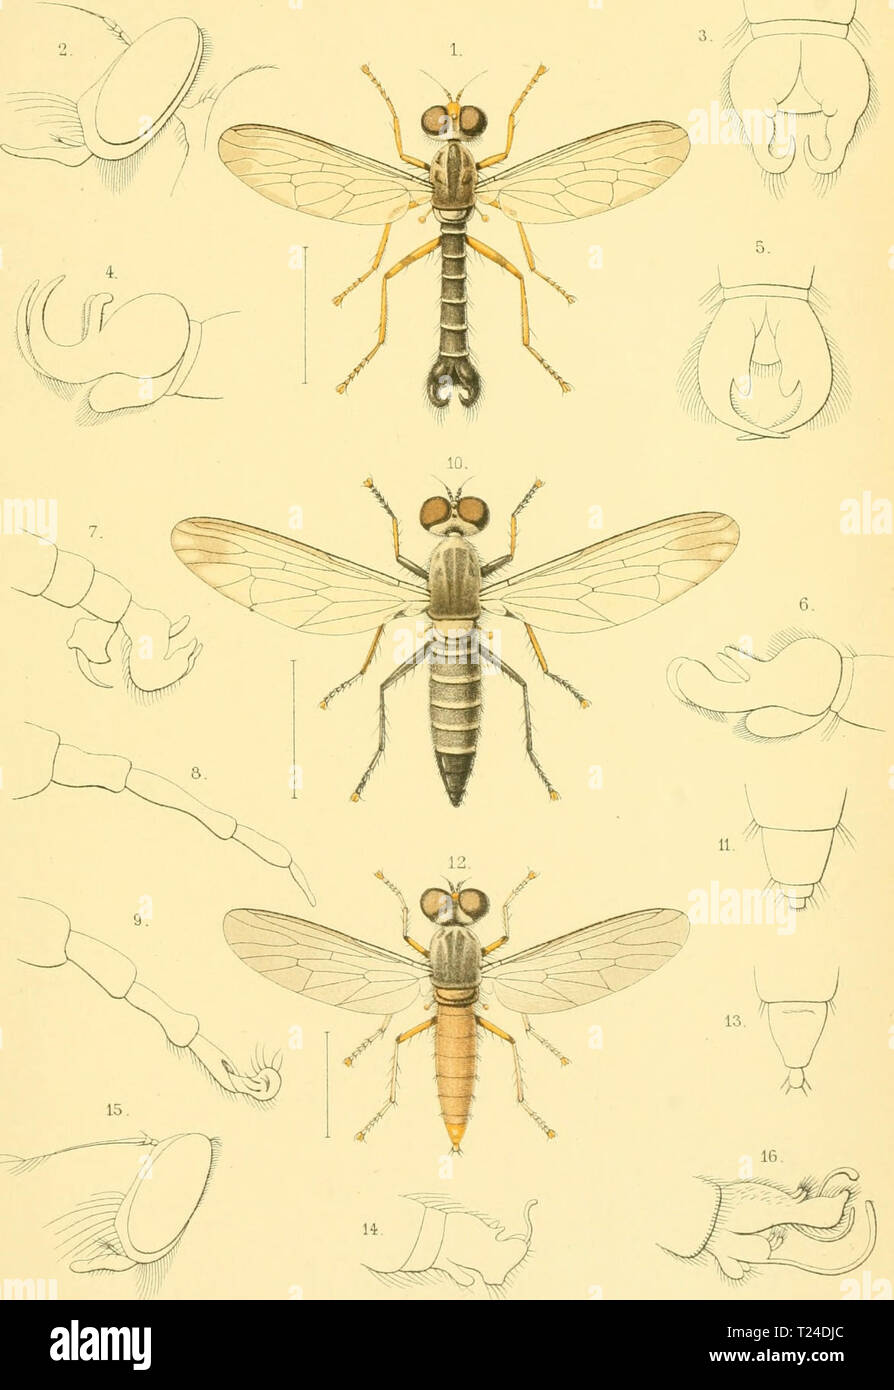 Archive image from page 682 of Diptera (1898) Stock Photo